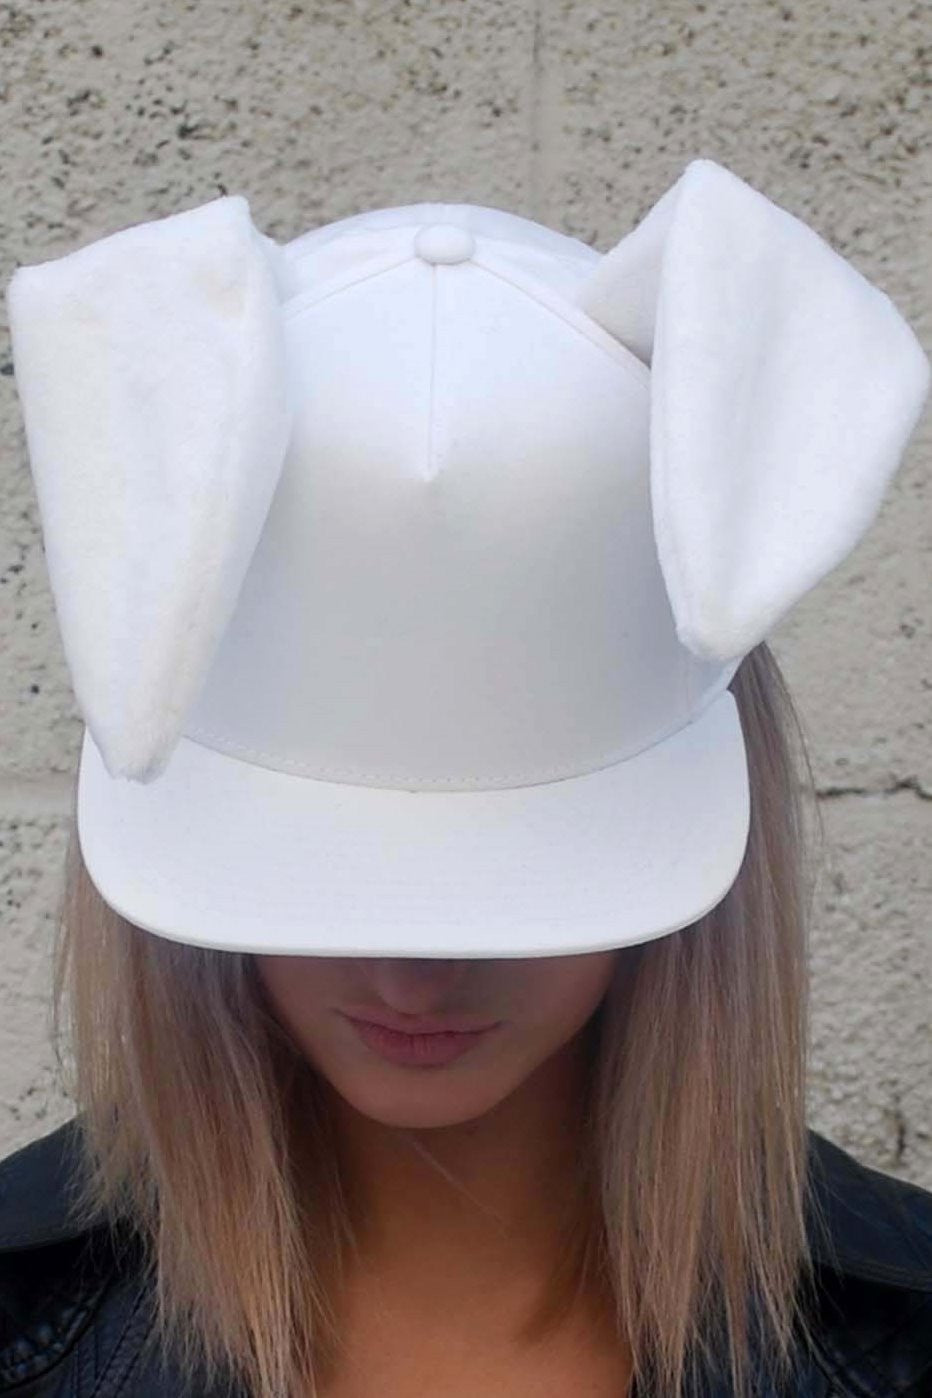 Rabbit ears snapback